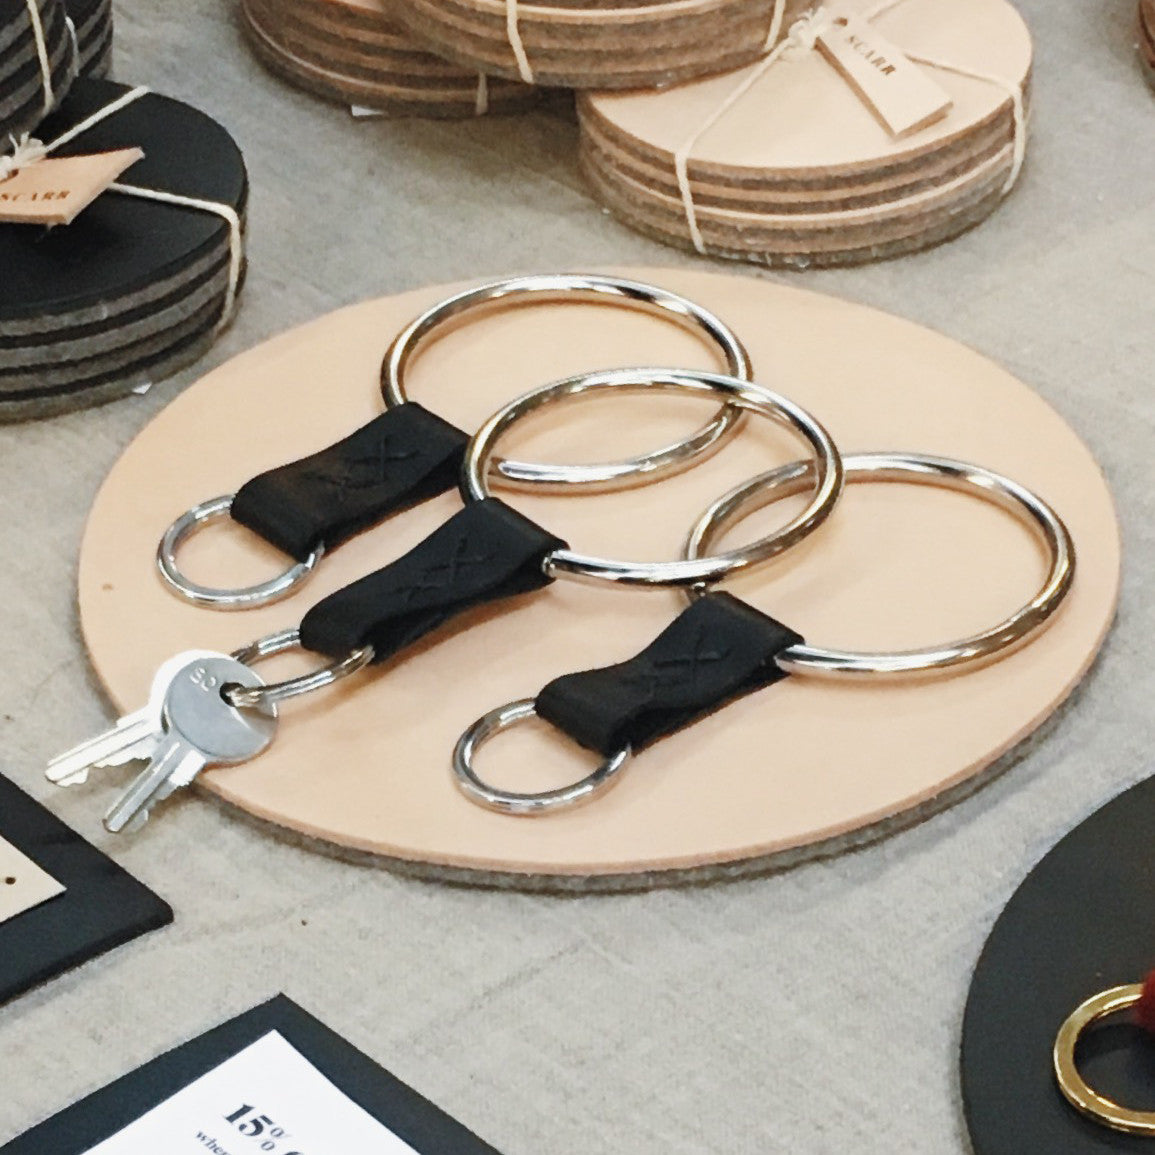 2016: Leather Bangle Keychain